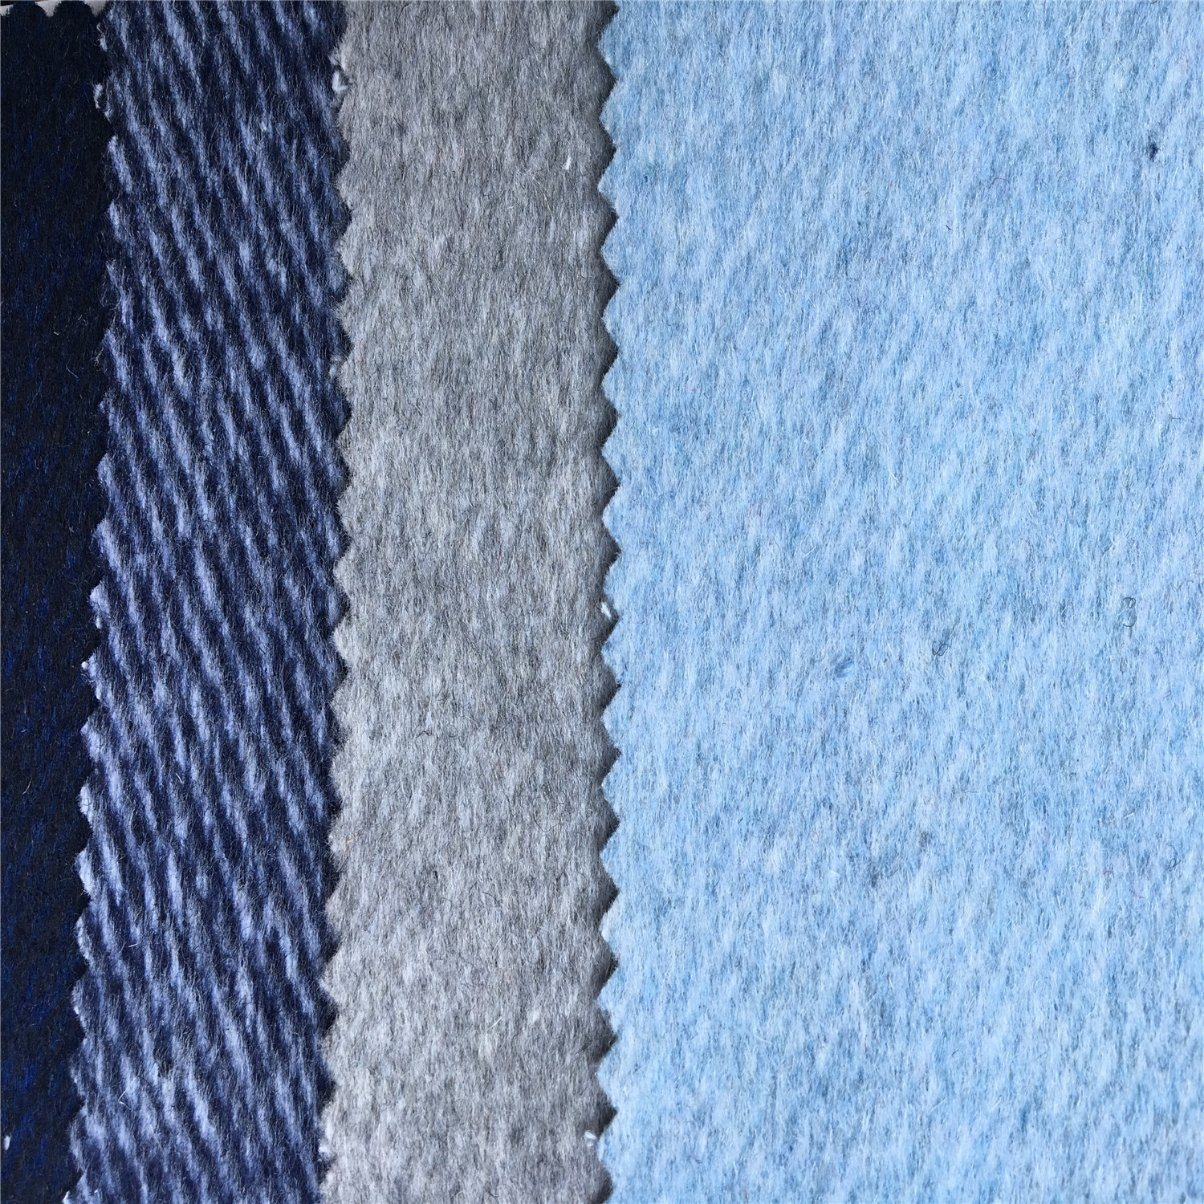 Twill Fleece Wool Fabric, Suit Fabric, Clothing, Jacket